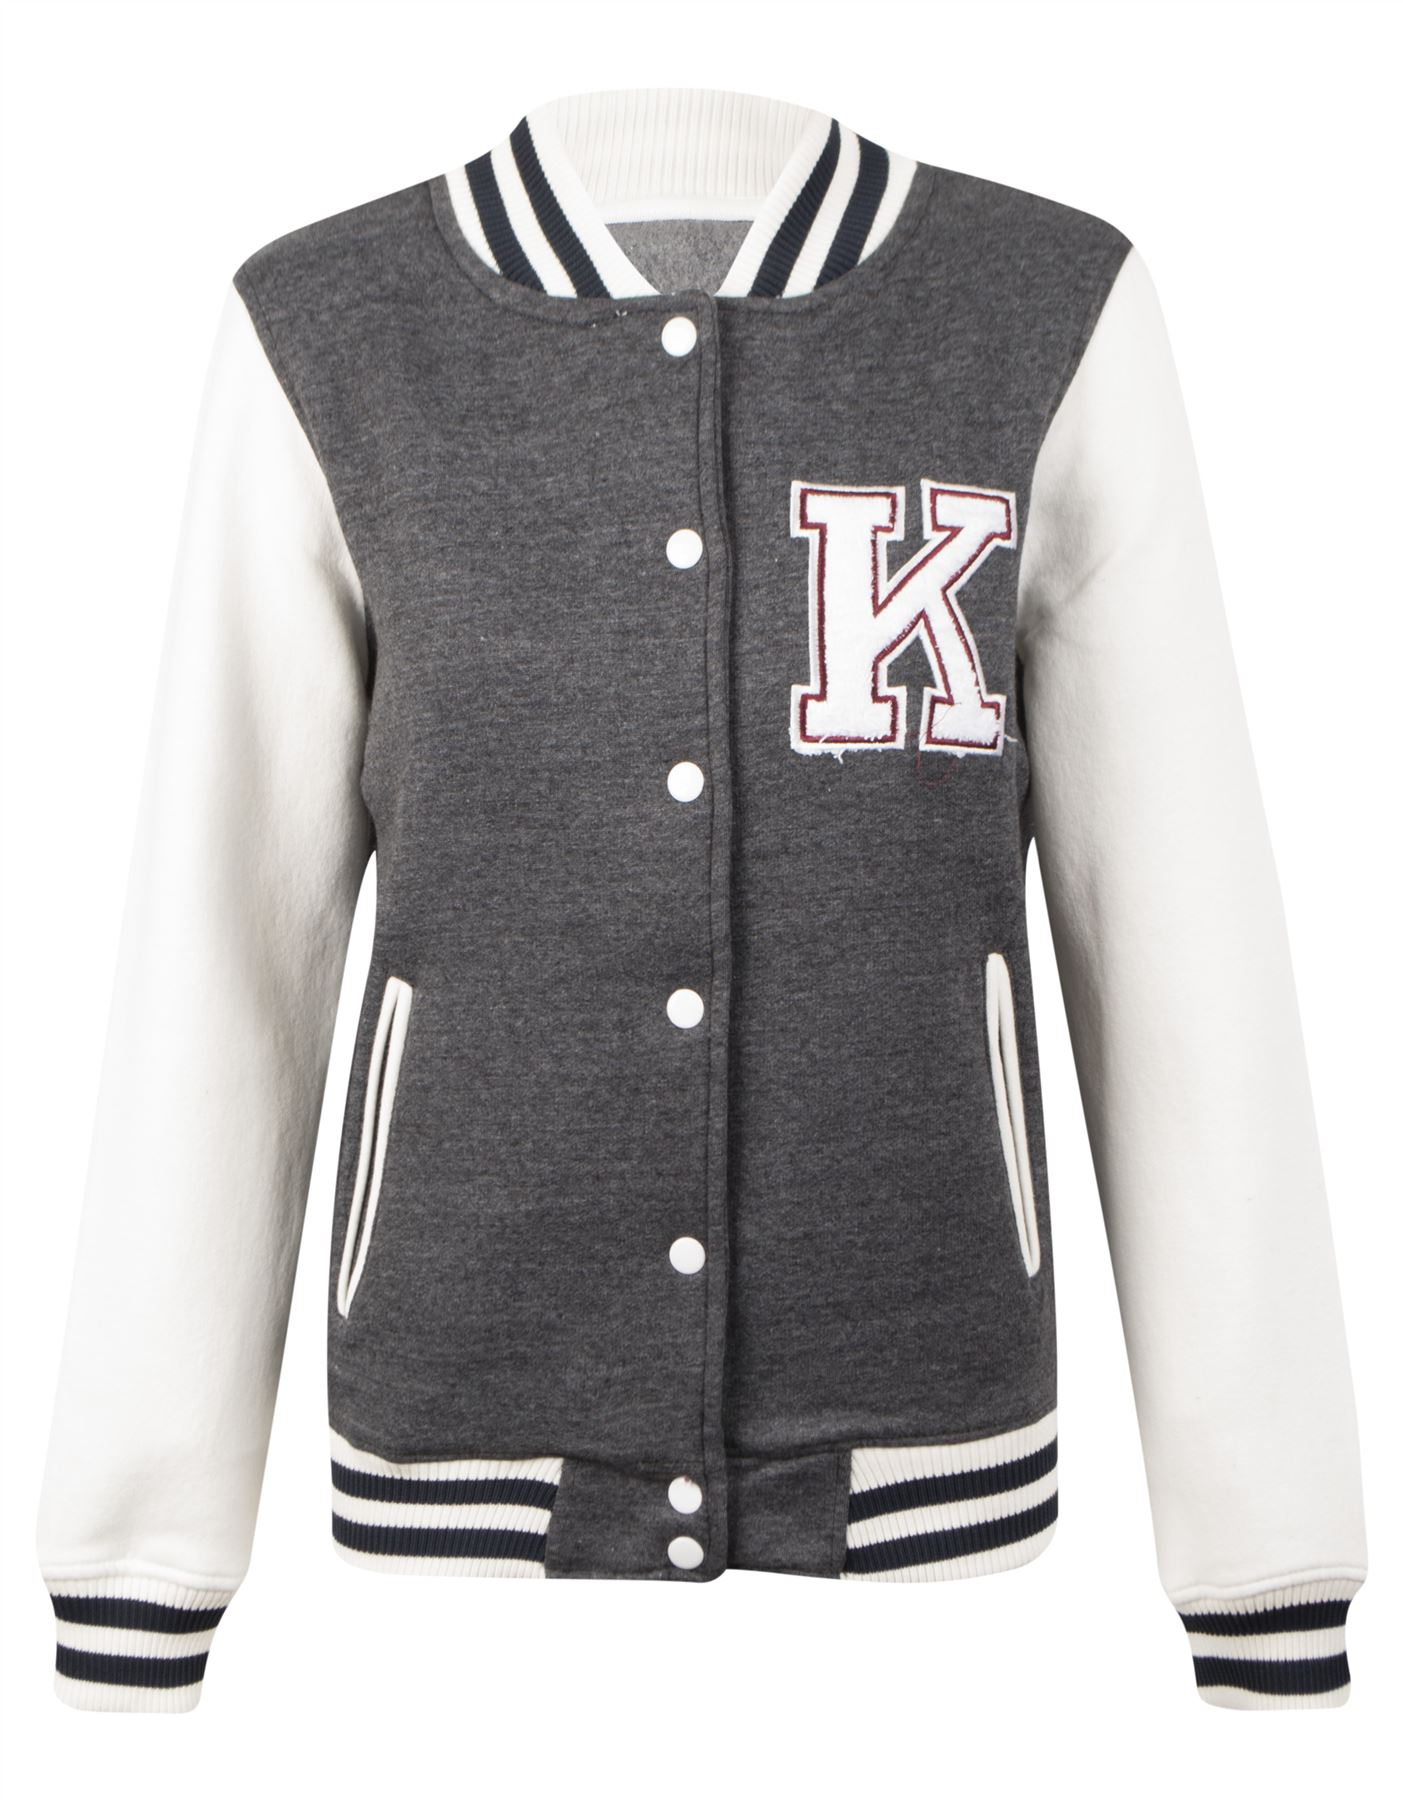 Find great deals on eBay for womens varsity jacket. Shop with confidence.